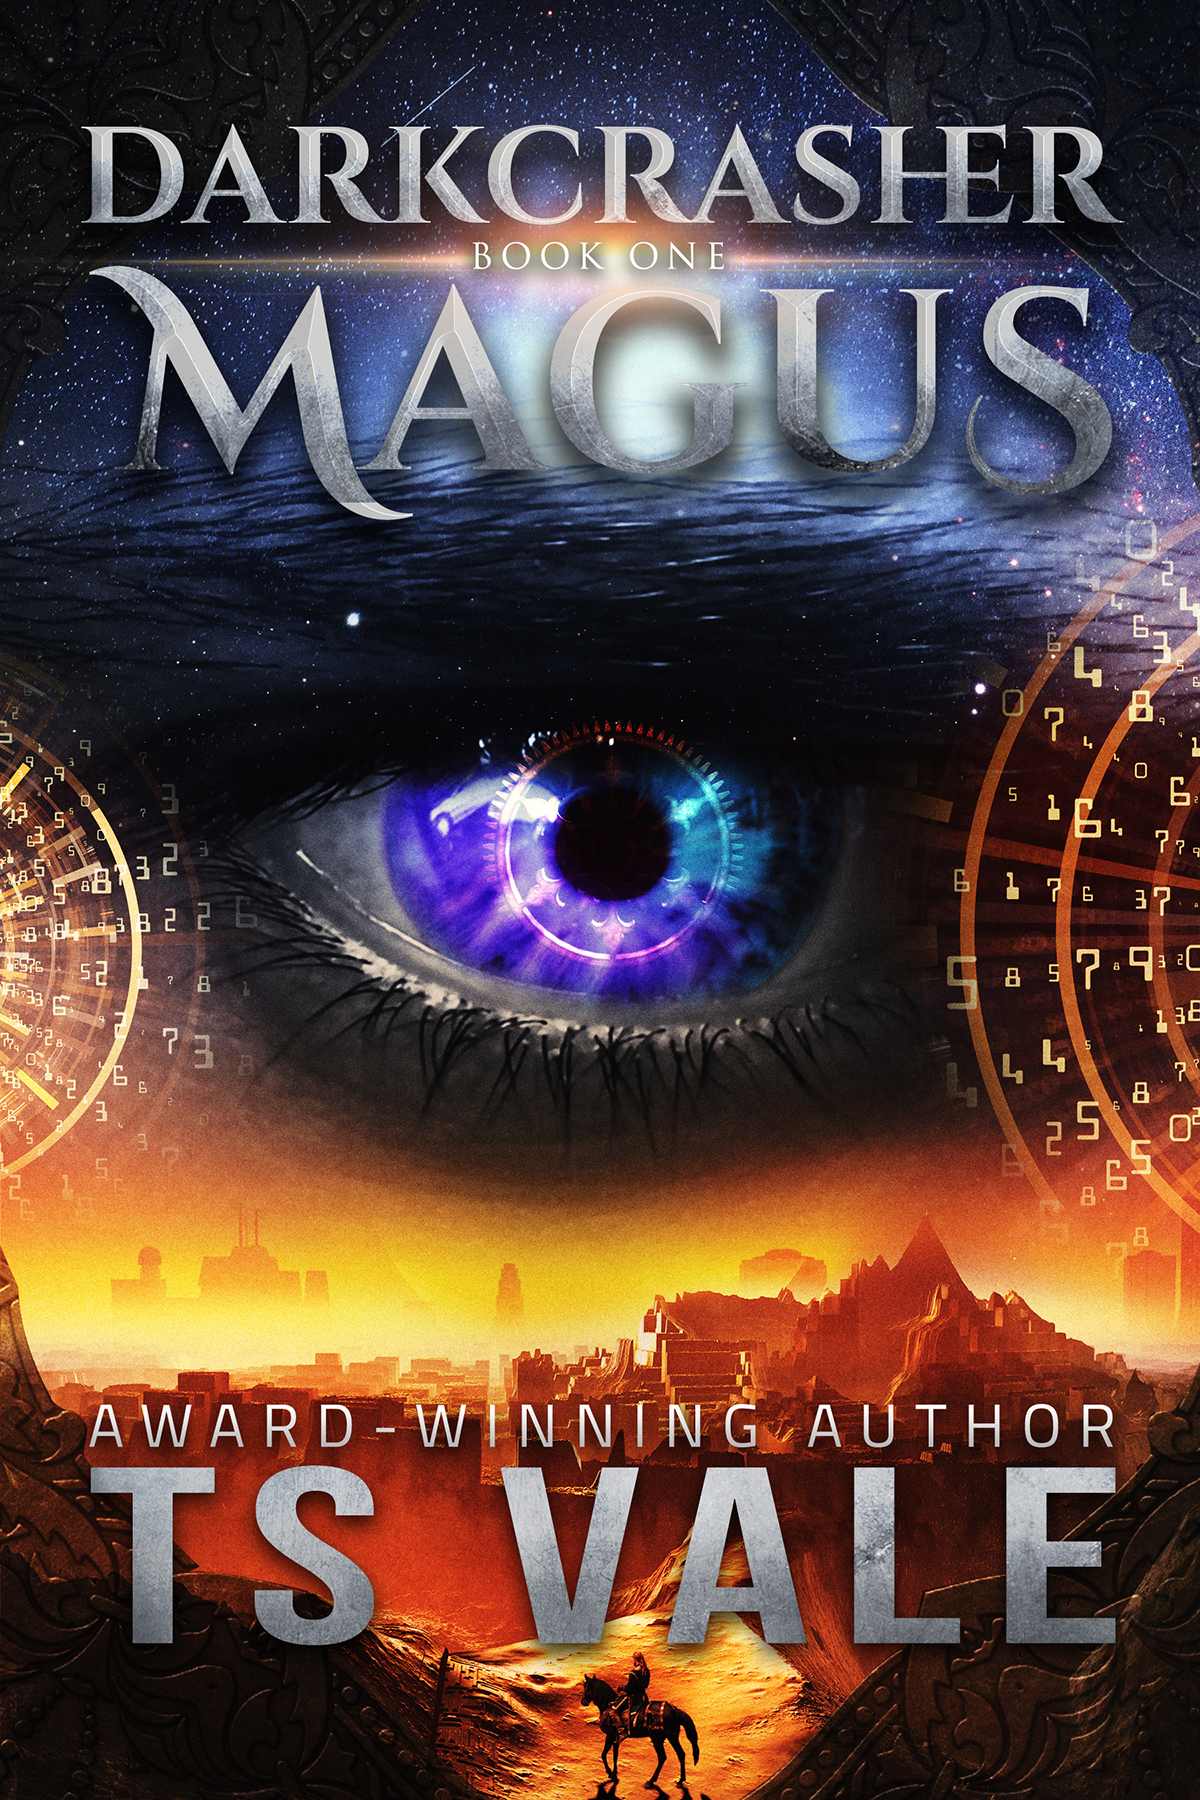 DARKCRASHER: Magus